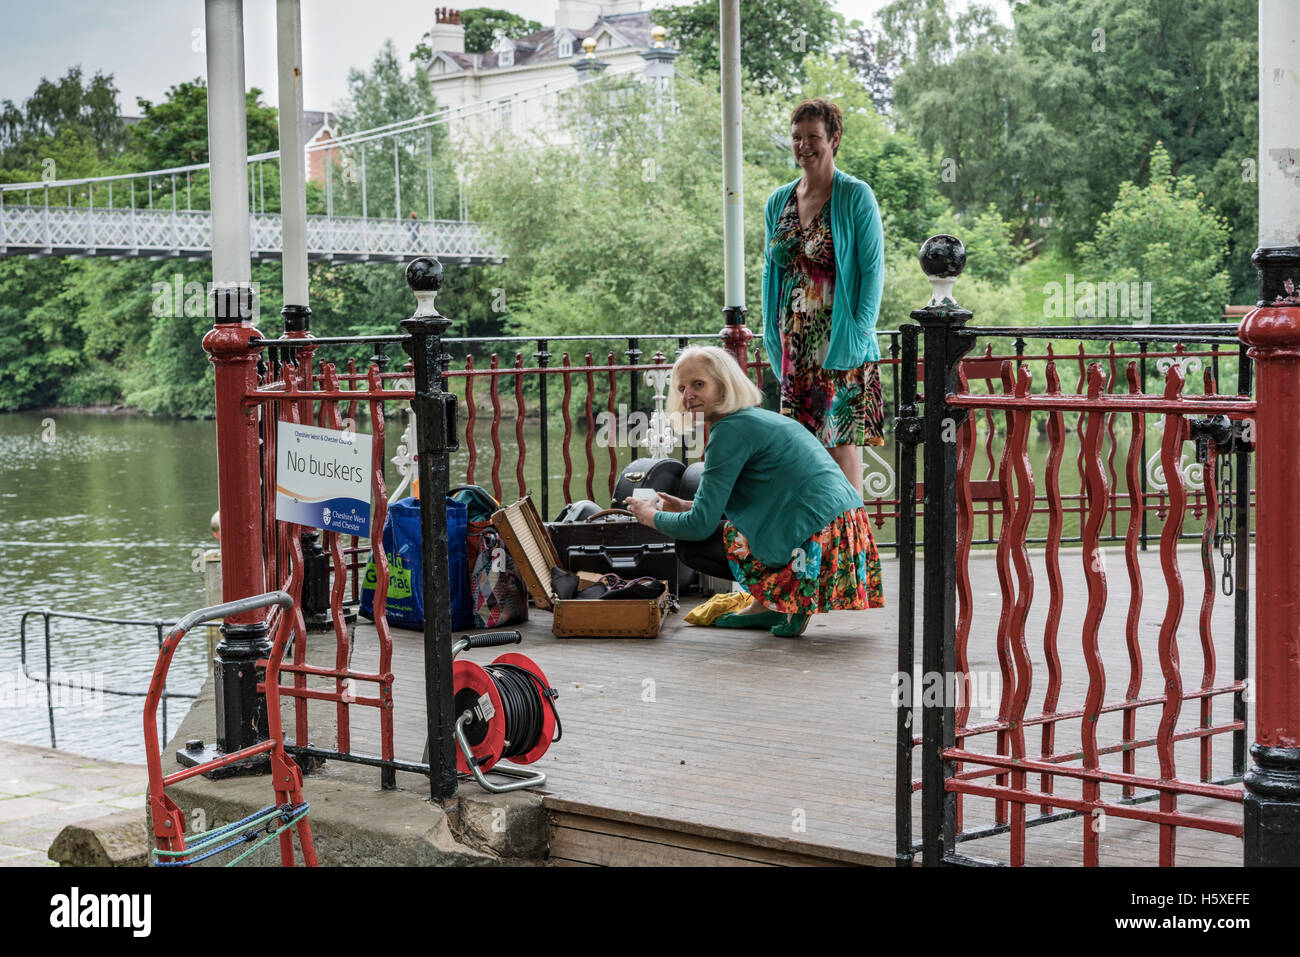 A band starts to setup on the Chester Groves' bandstand - Stock Image